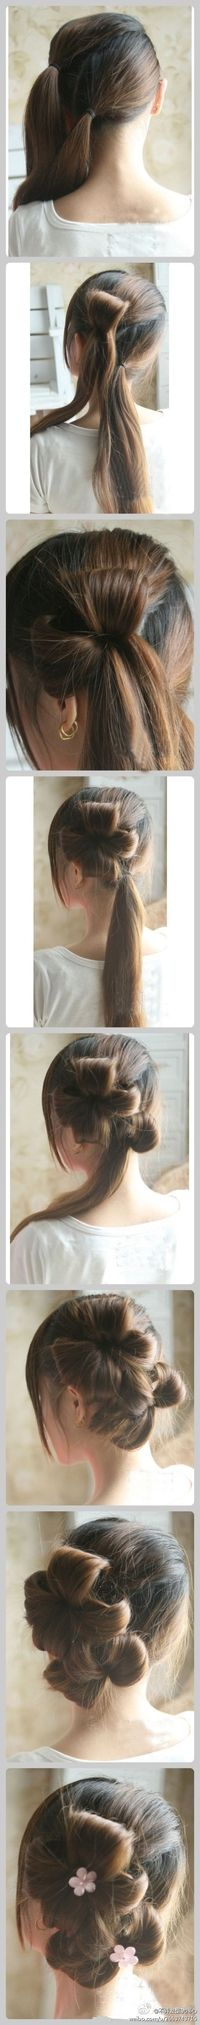 like this hairstyle would be great for a bride or bridesmaids